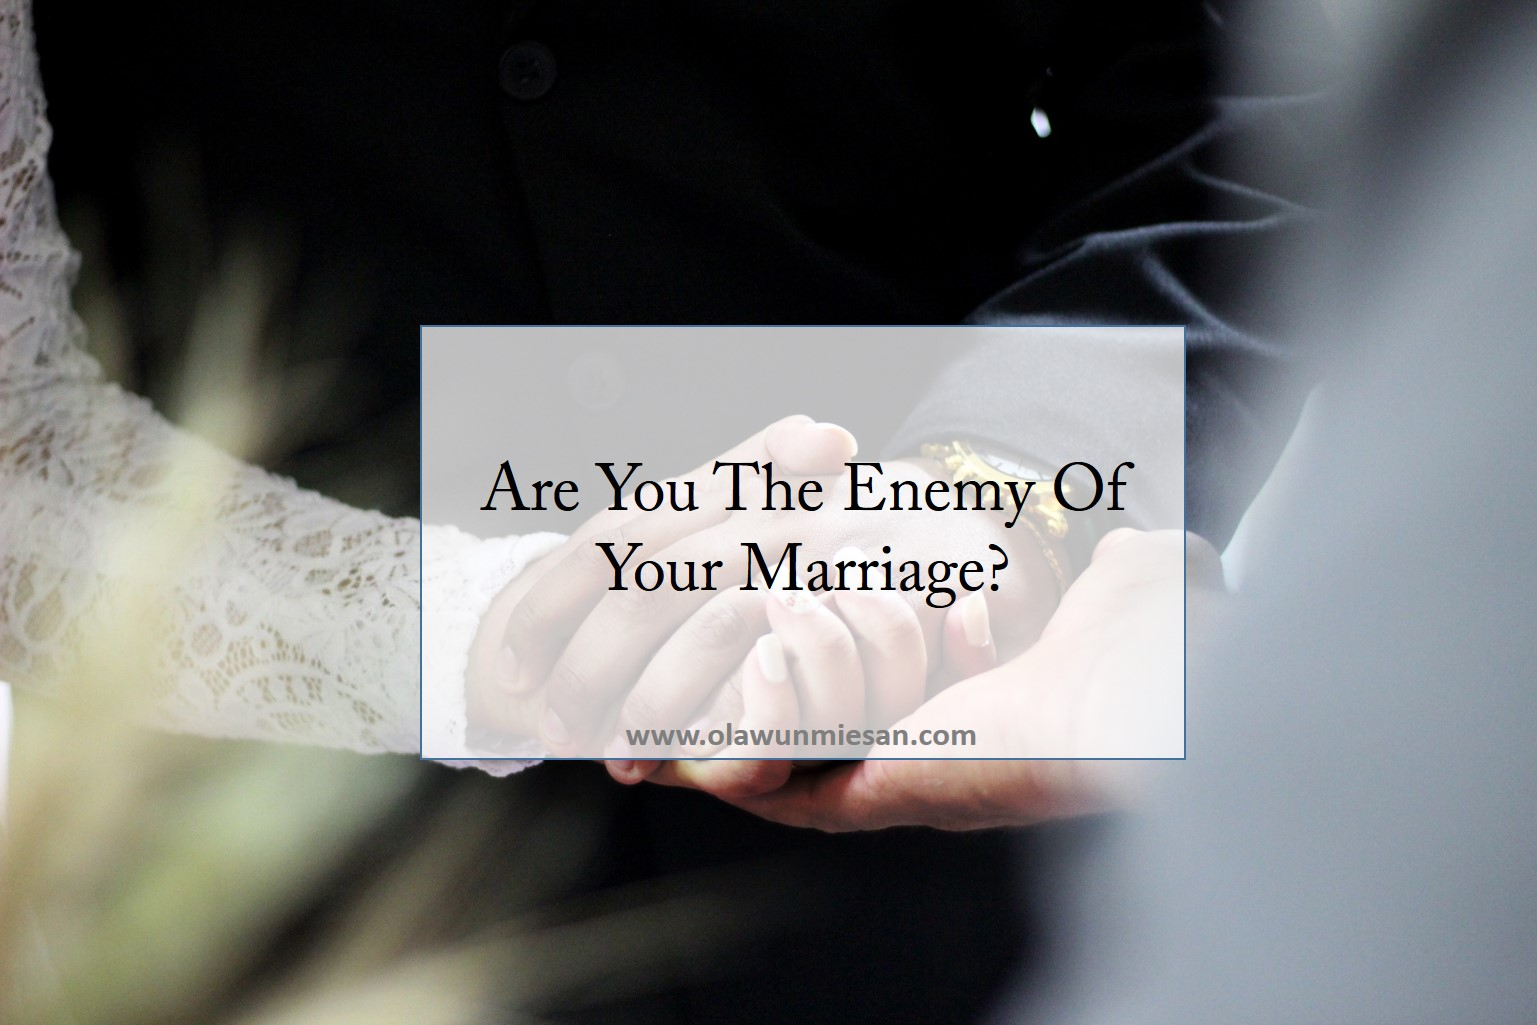 are you the enemy of your marriage?